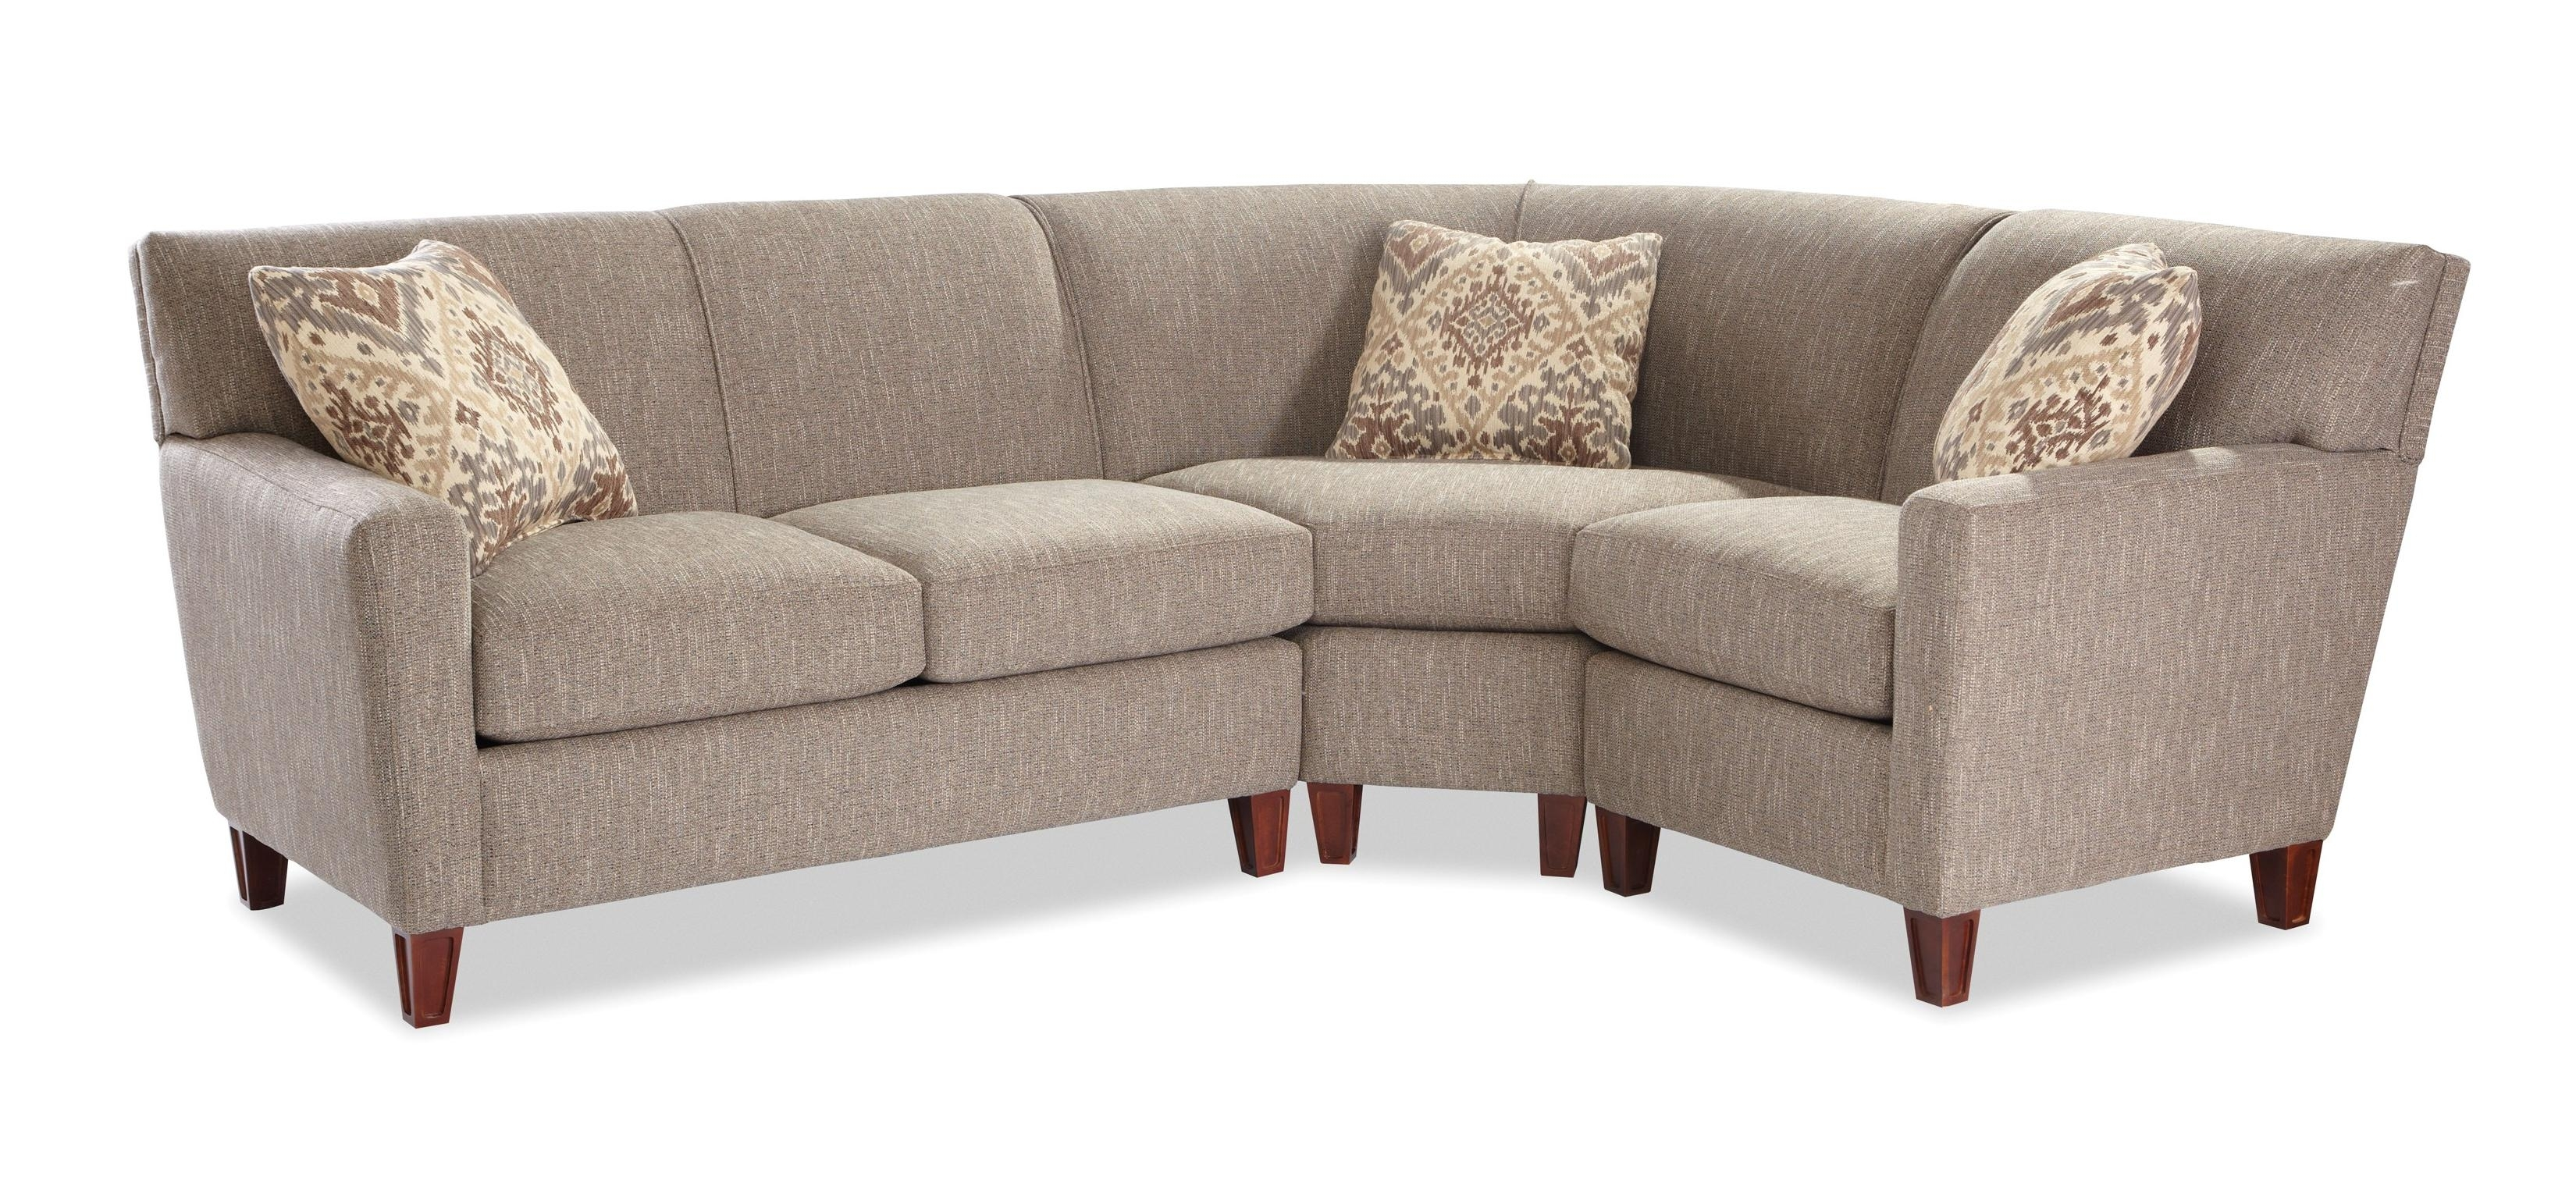 Craftmaster 7864 Three Piece Sectional Sofa With Laf Loveseat Throughout Blaine 3 Piece Sectionals (View 5 of 25)